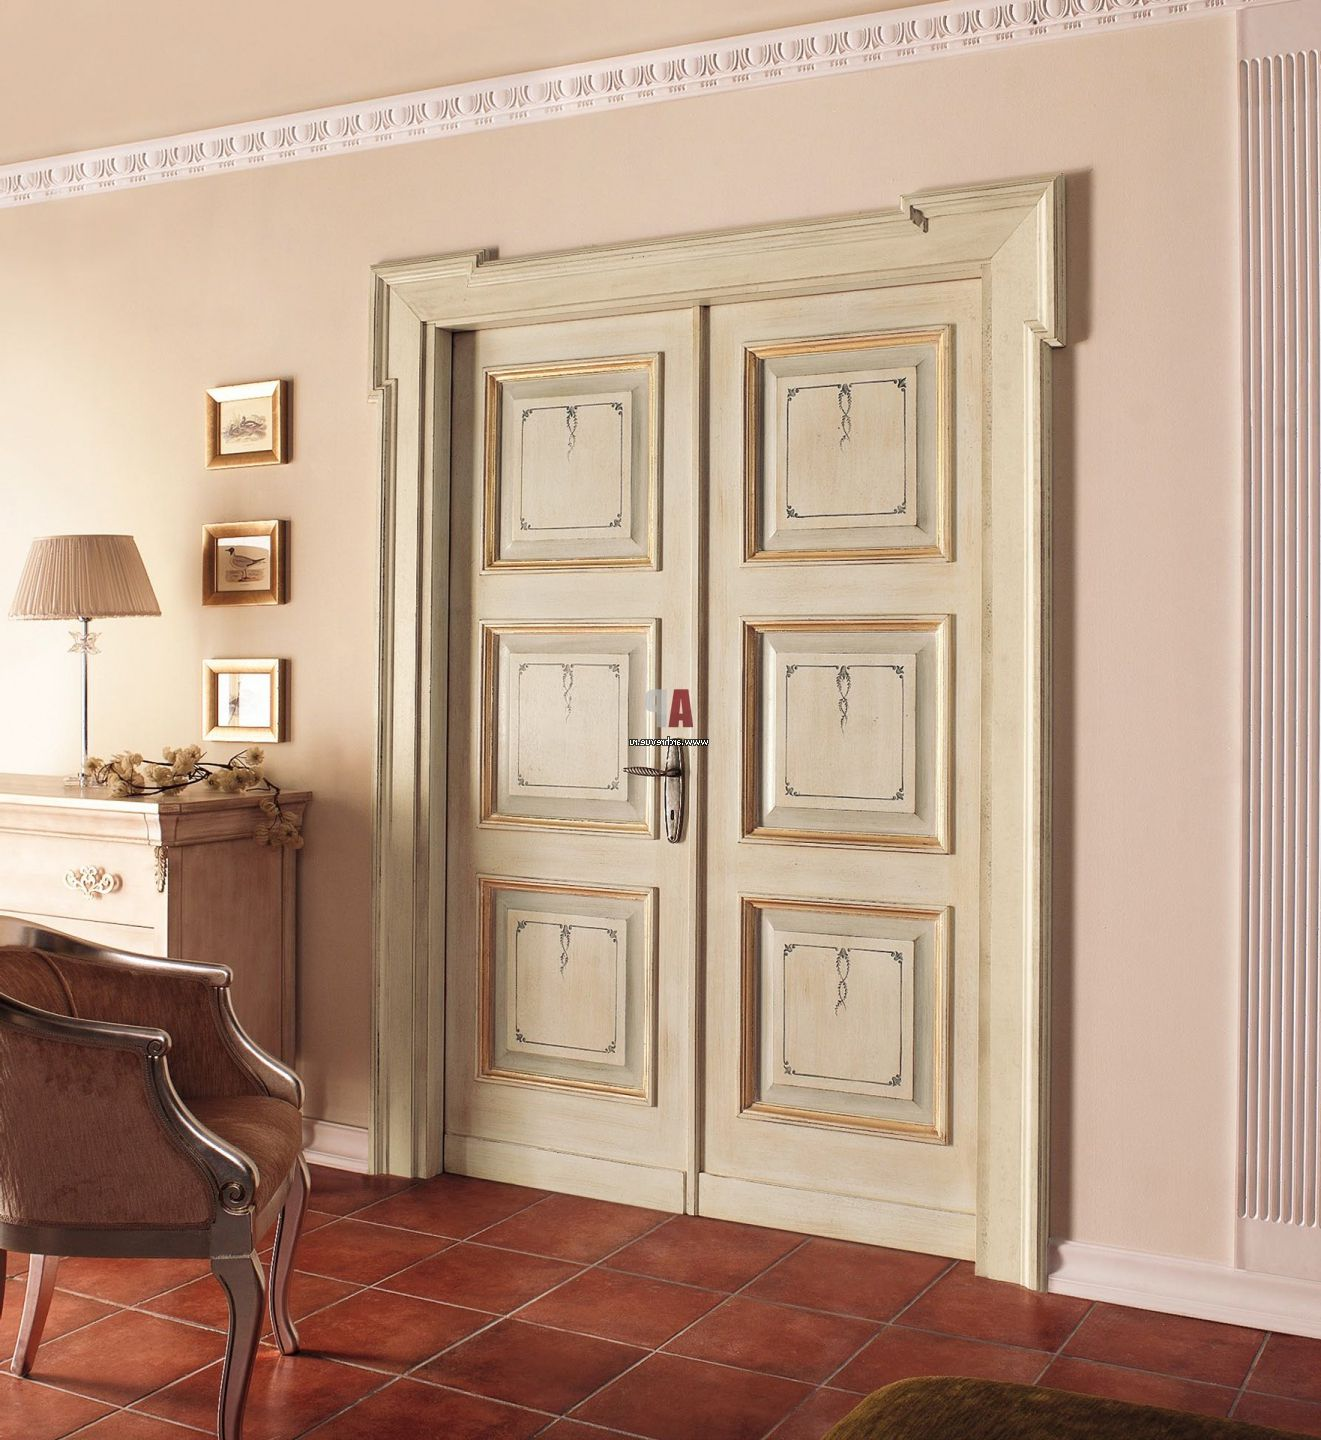 Massive classic double-wing wooden interior door in bright colors